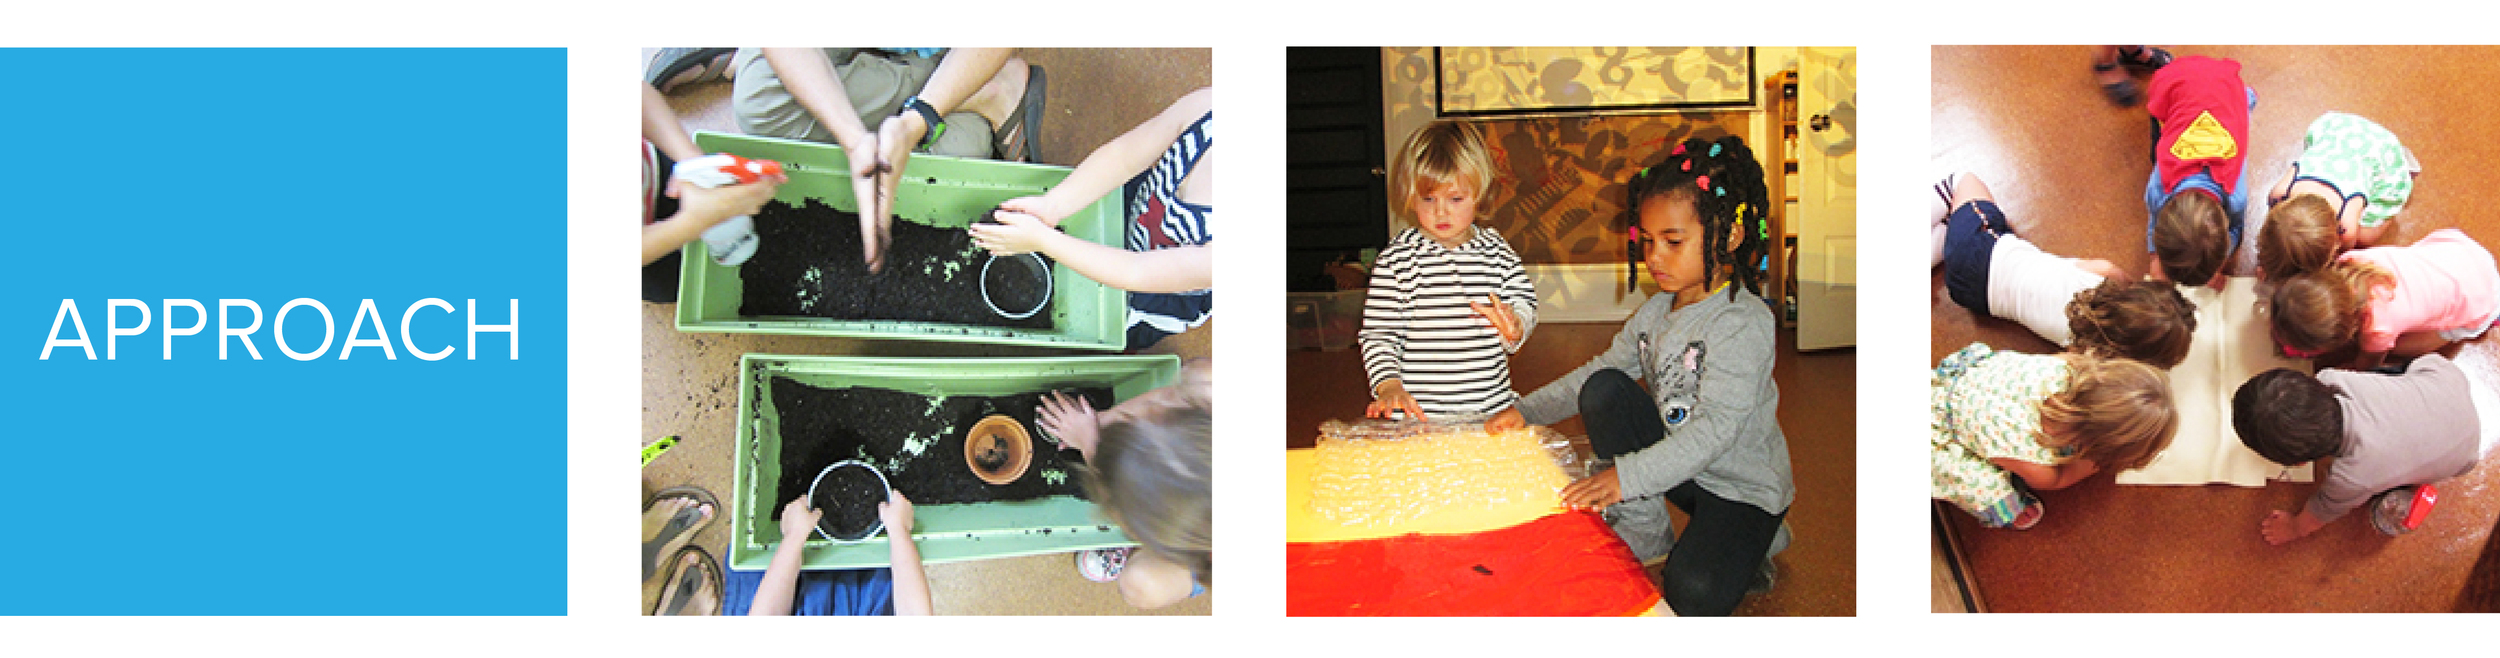 RED HOOK PLAYGROUP: OUR APPROACH